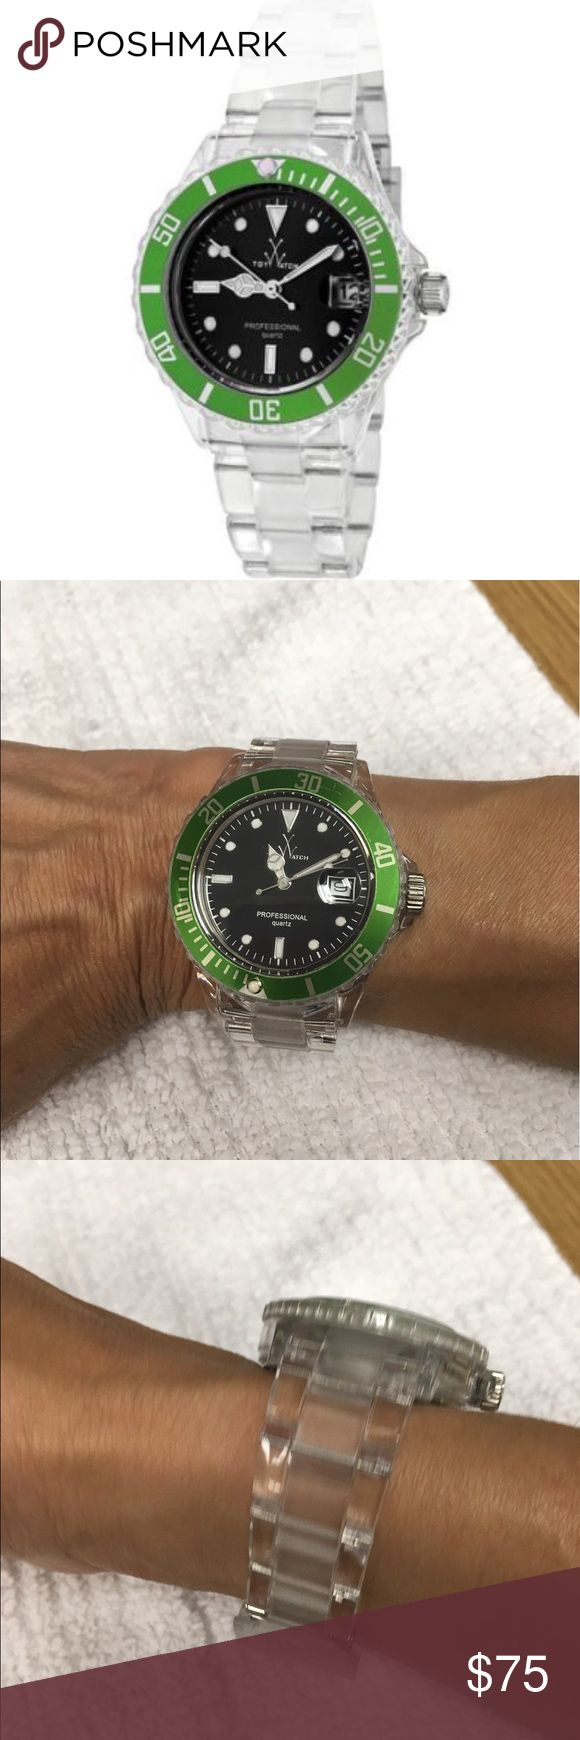 ToyWatch 1105GRP Polycarbonate construction with rotating green bezel and black dial. Finished on a clear polycarbonate bracelet. No scratches. Never worn. No box. ToyWatch Accessories Watches